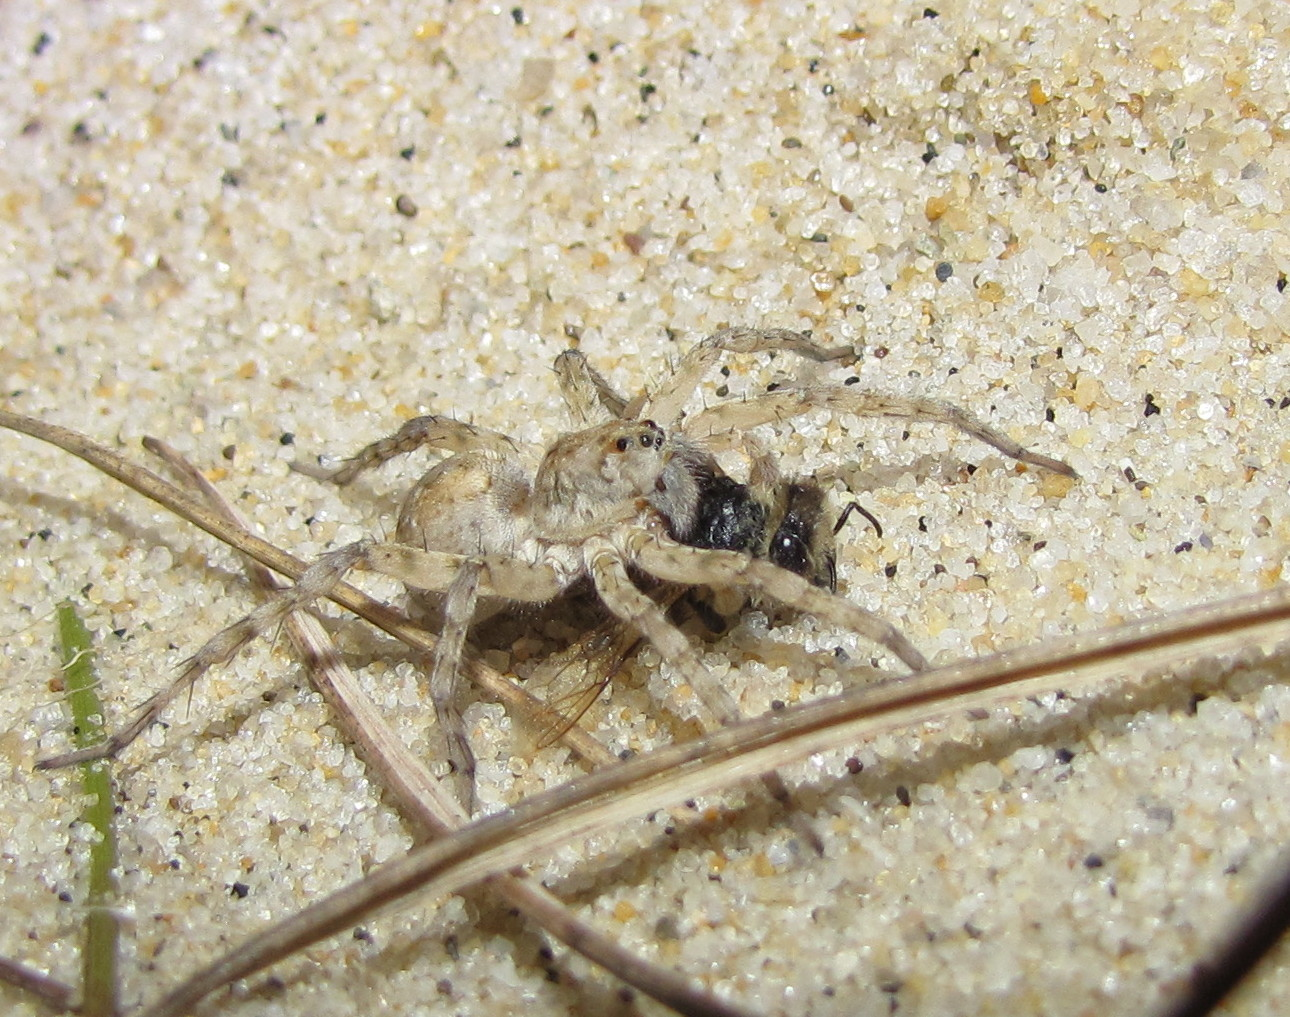 Good Spiders Of Cape Cod Part - 6: The Specimen Shown Here Is One I Encountered In Massachusetts On Cape Cod  National Seashore Under Cover Of Darkness On July 25, 2009.